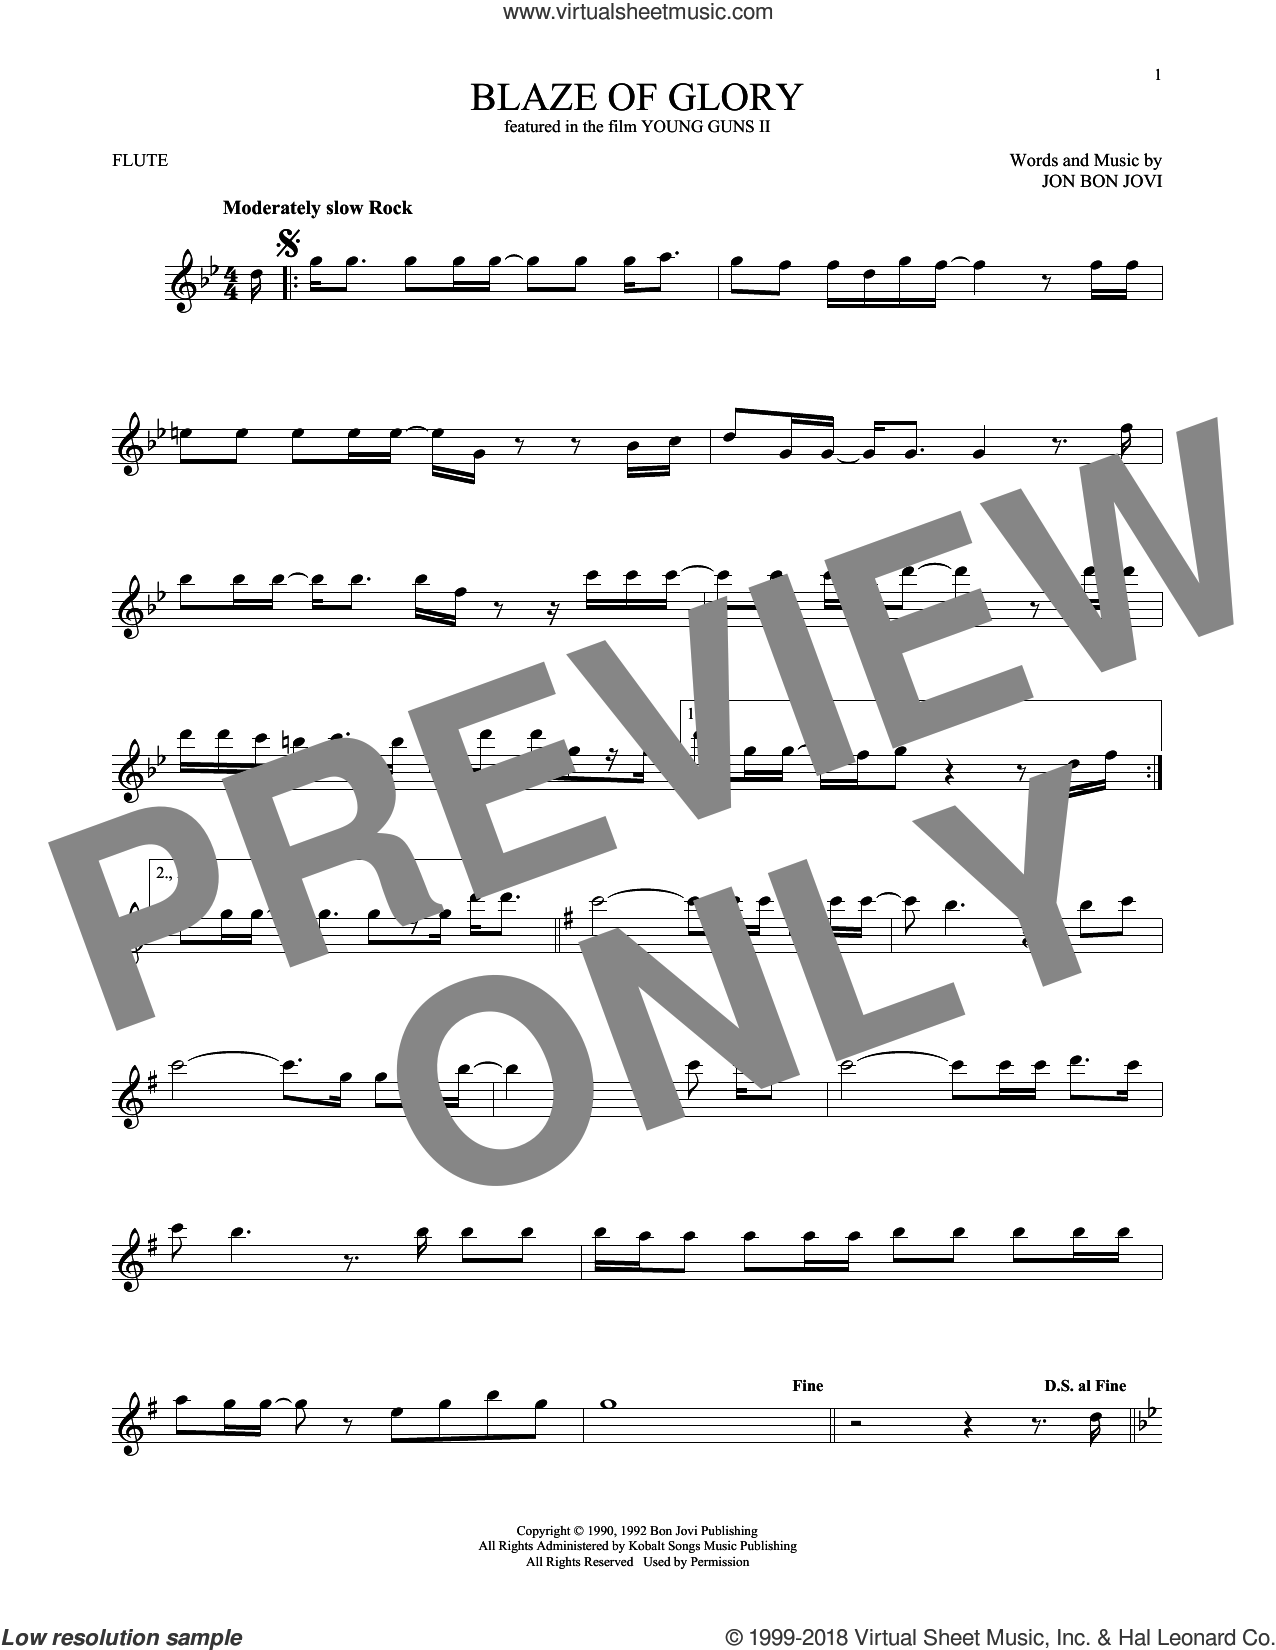 Blaze Of Glory sheet music for flute solo by Bon Jovi. Score Image Preview.